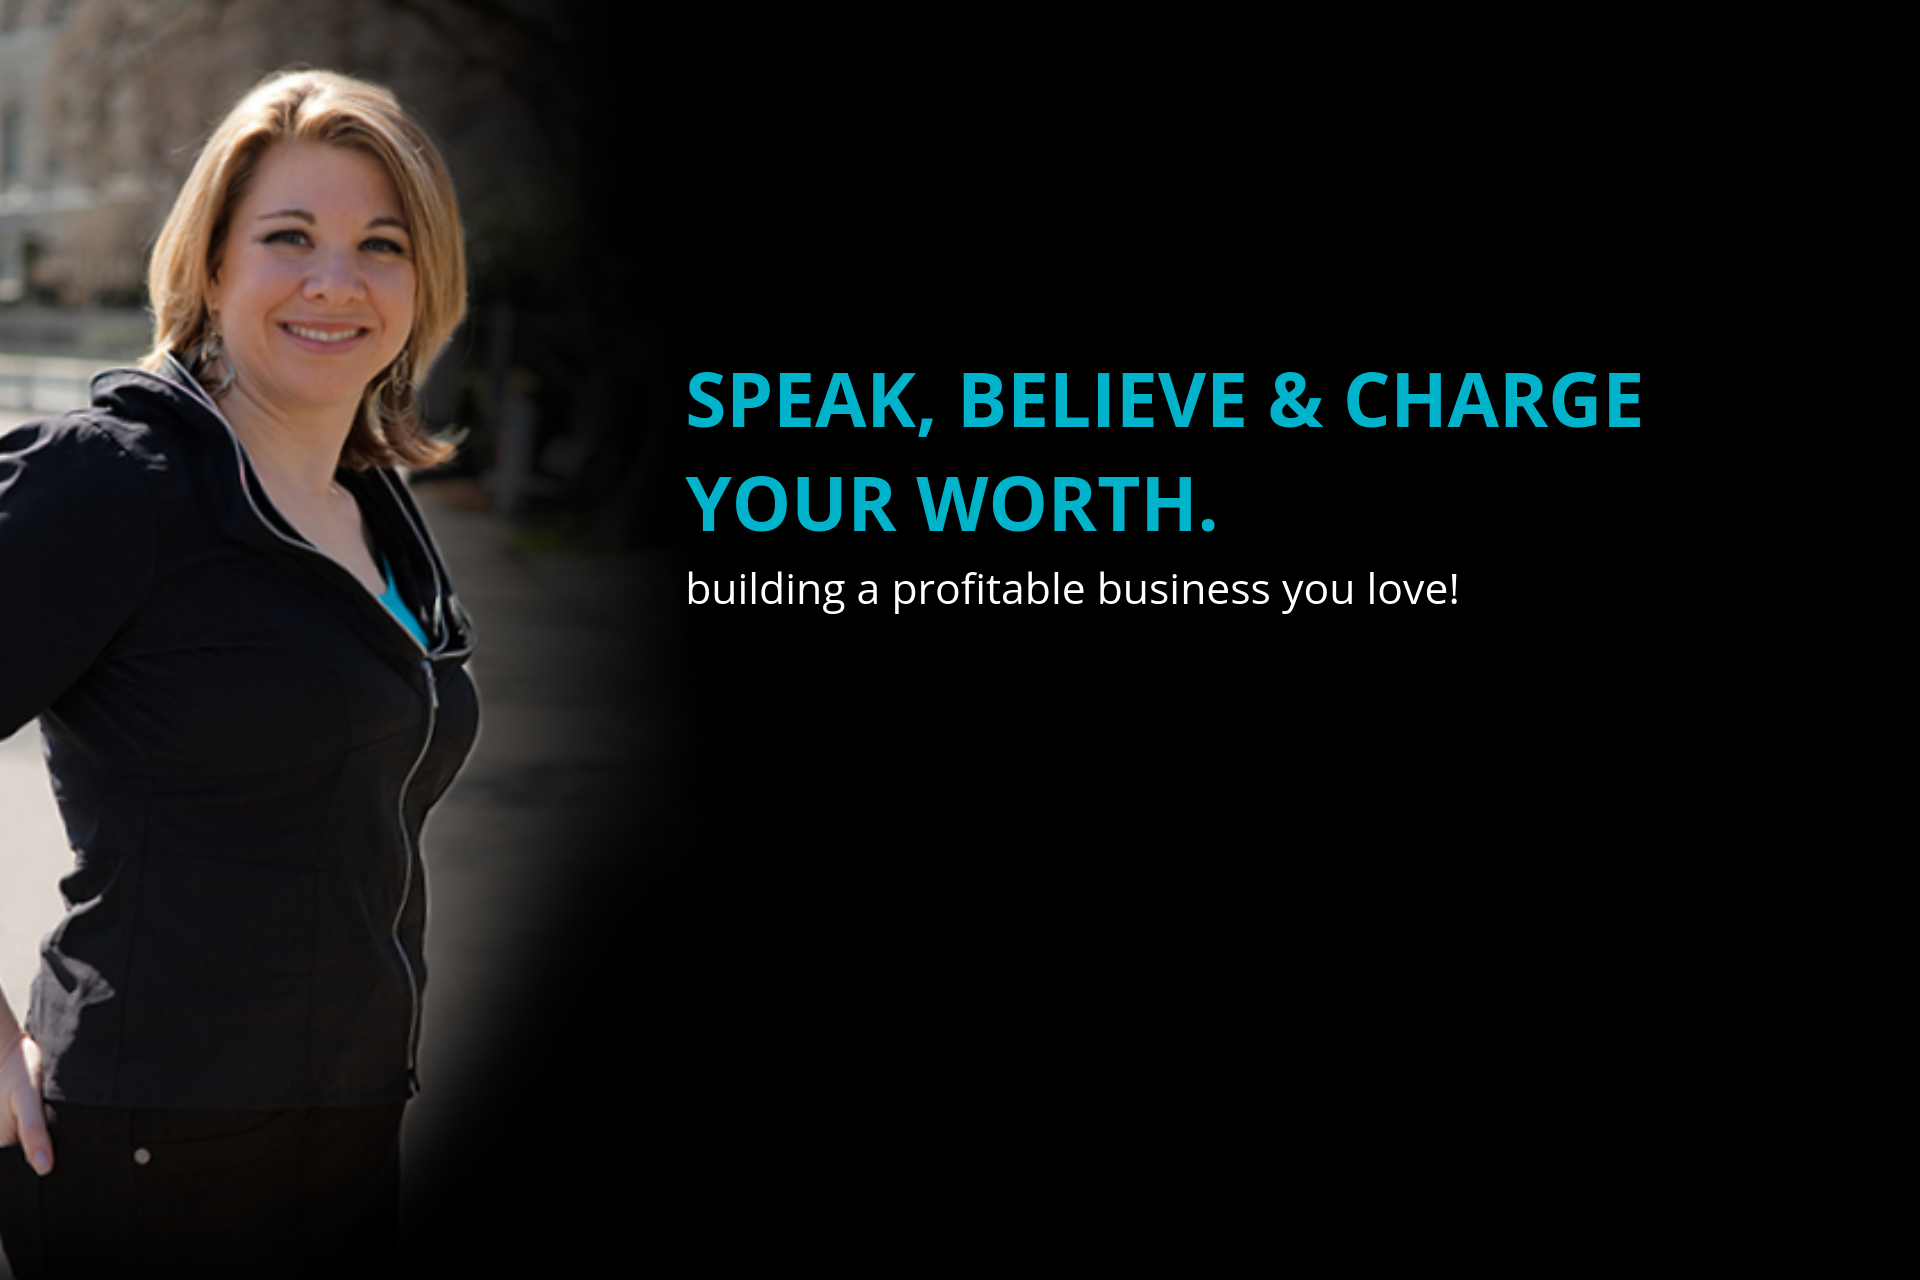 Speak believe and Charge Your Worth